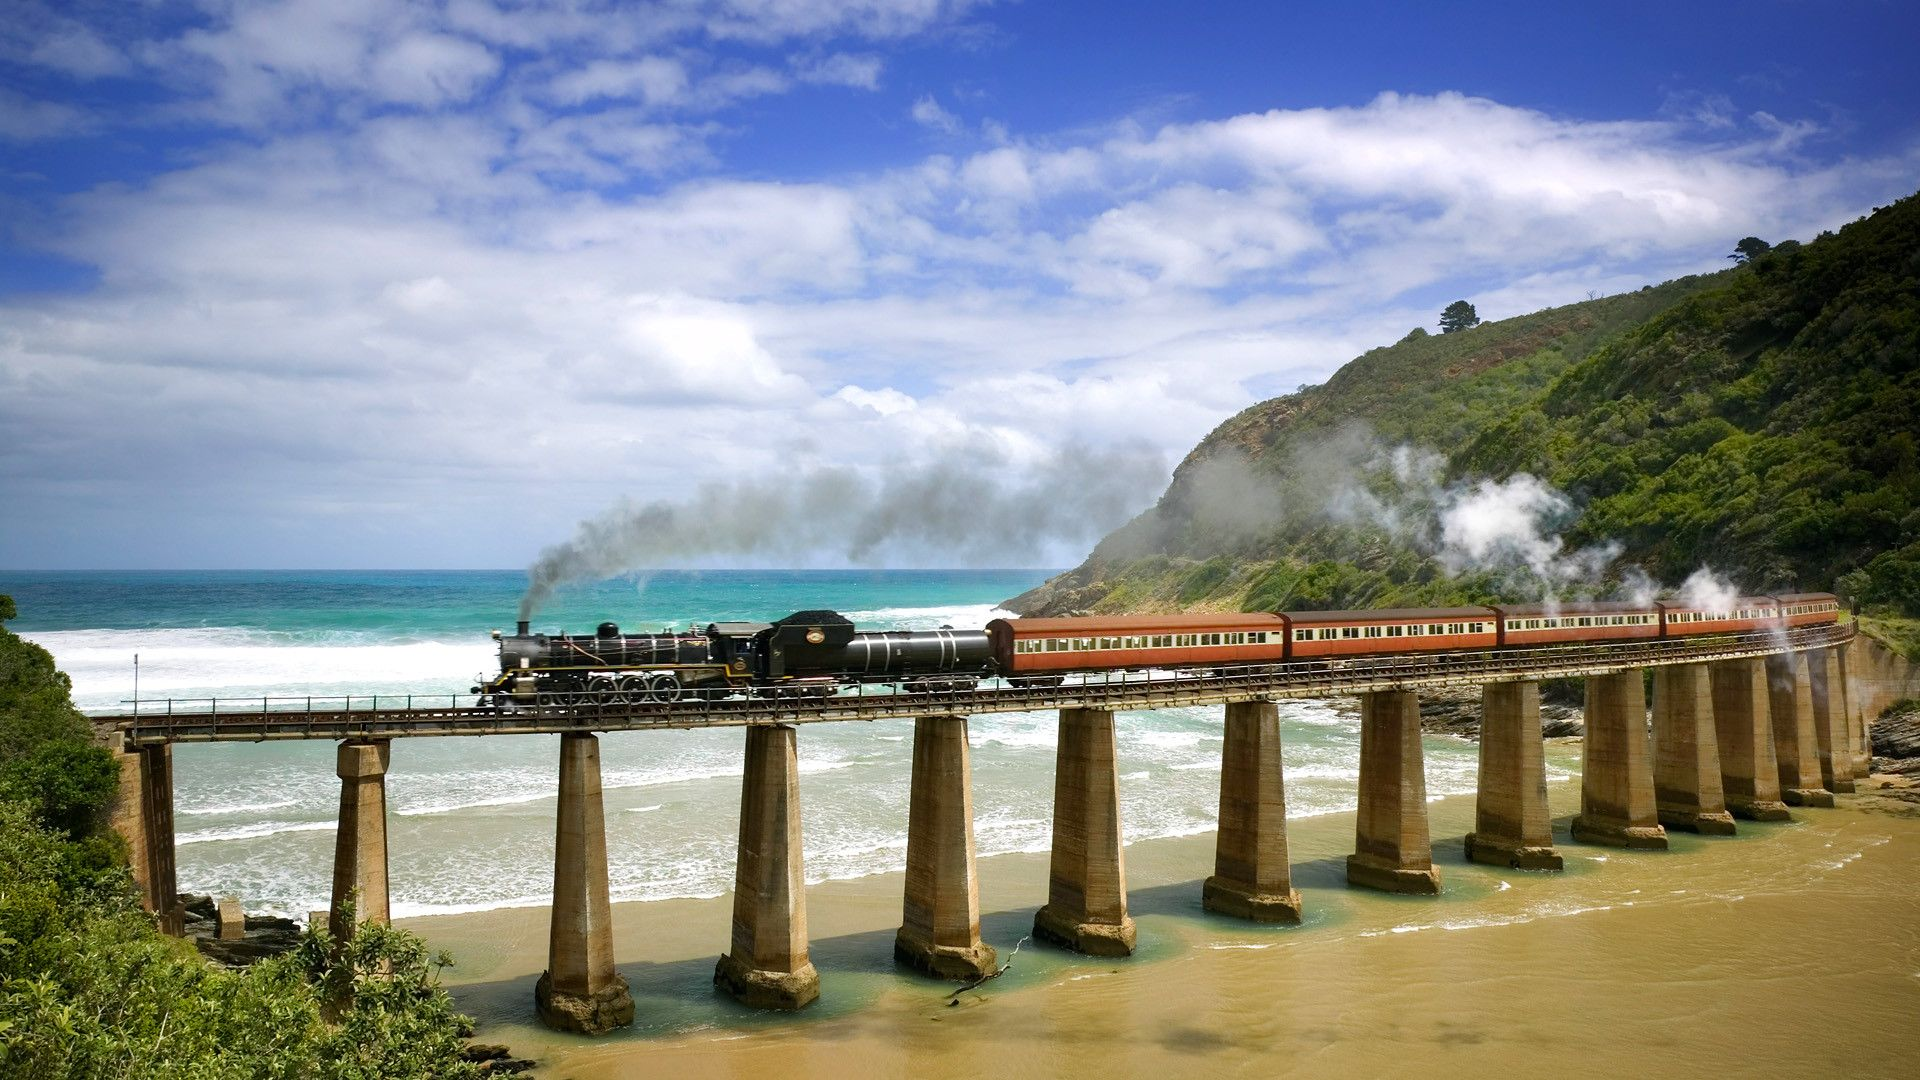 Coastal train on Kaaimans River, Western Cape, South Africa